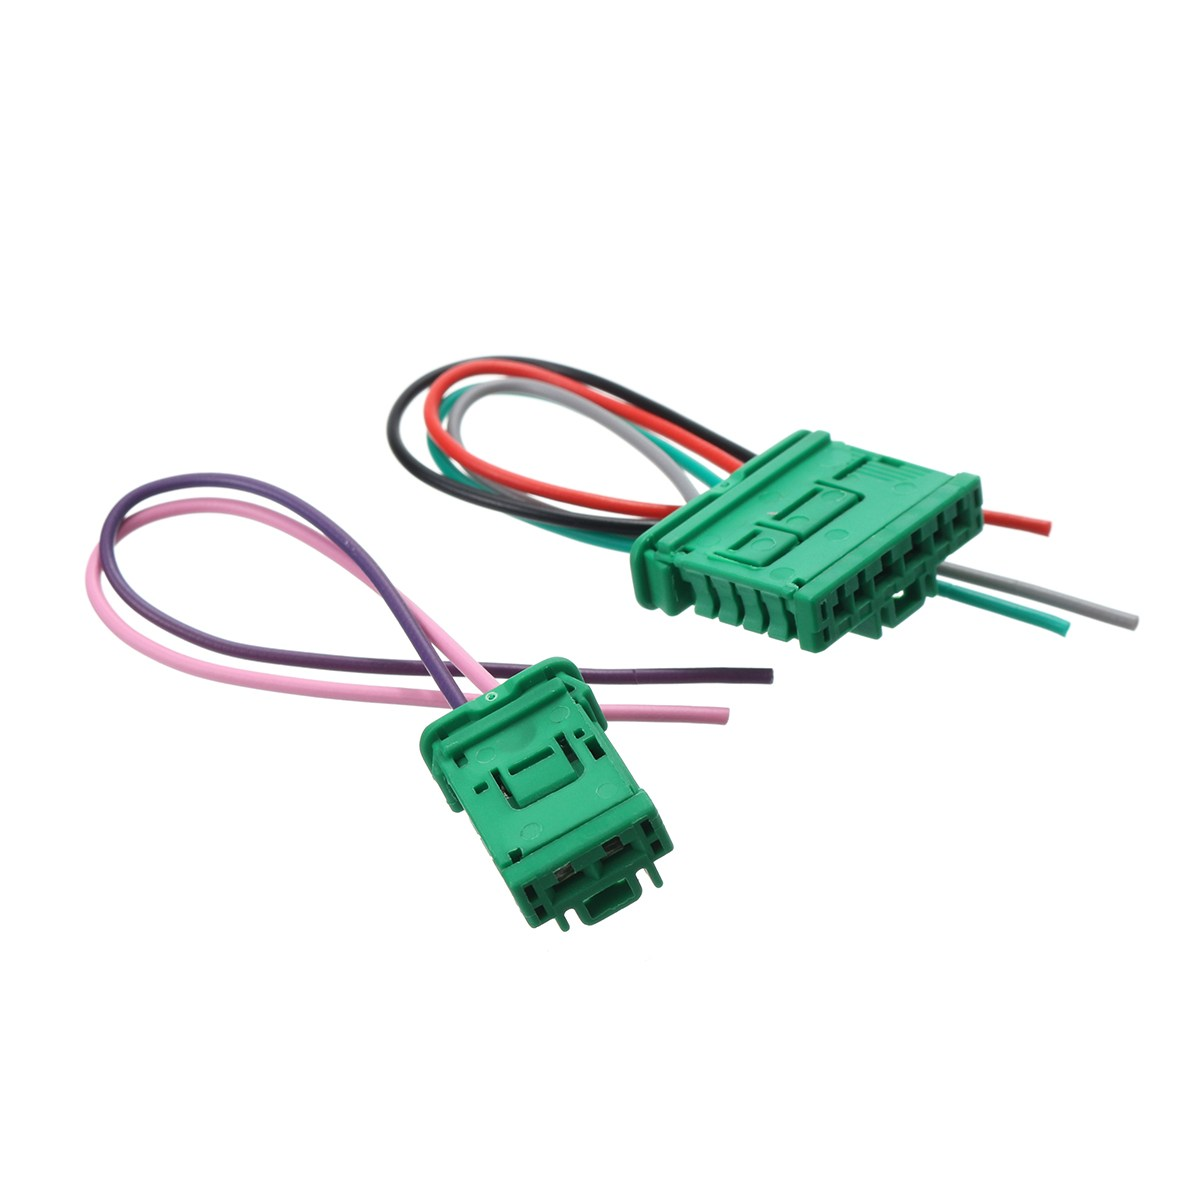 kroak heater resistor wiring harness loom 27150ed70b for citroen for peugeot for for renault for megane for scenic in cables adapters sockets from  [ 1200 x 1200 Pixel ]